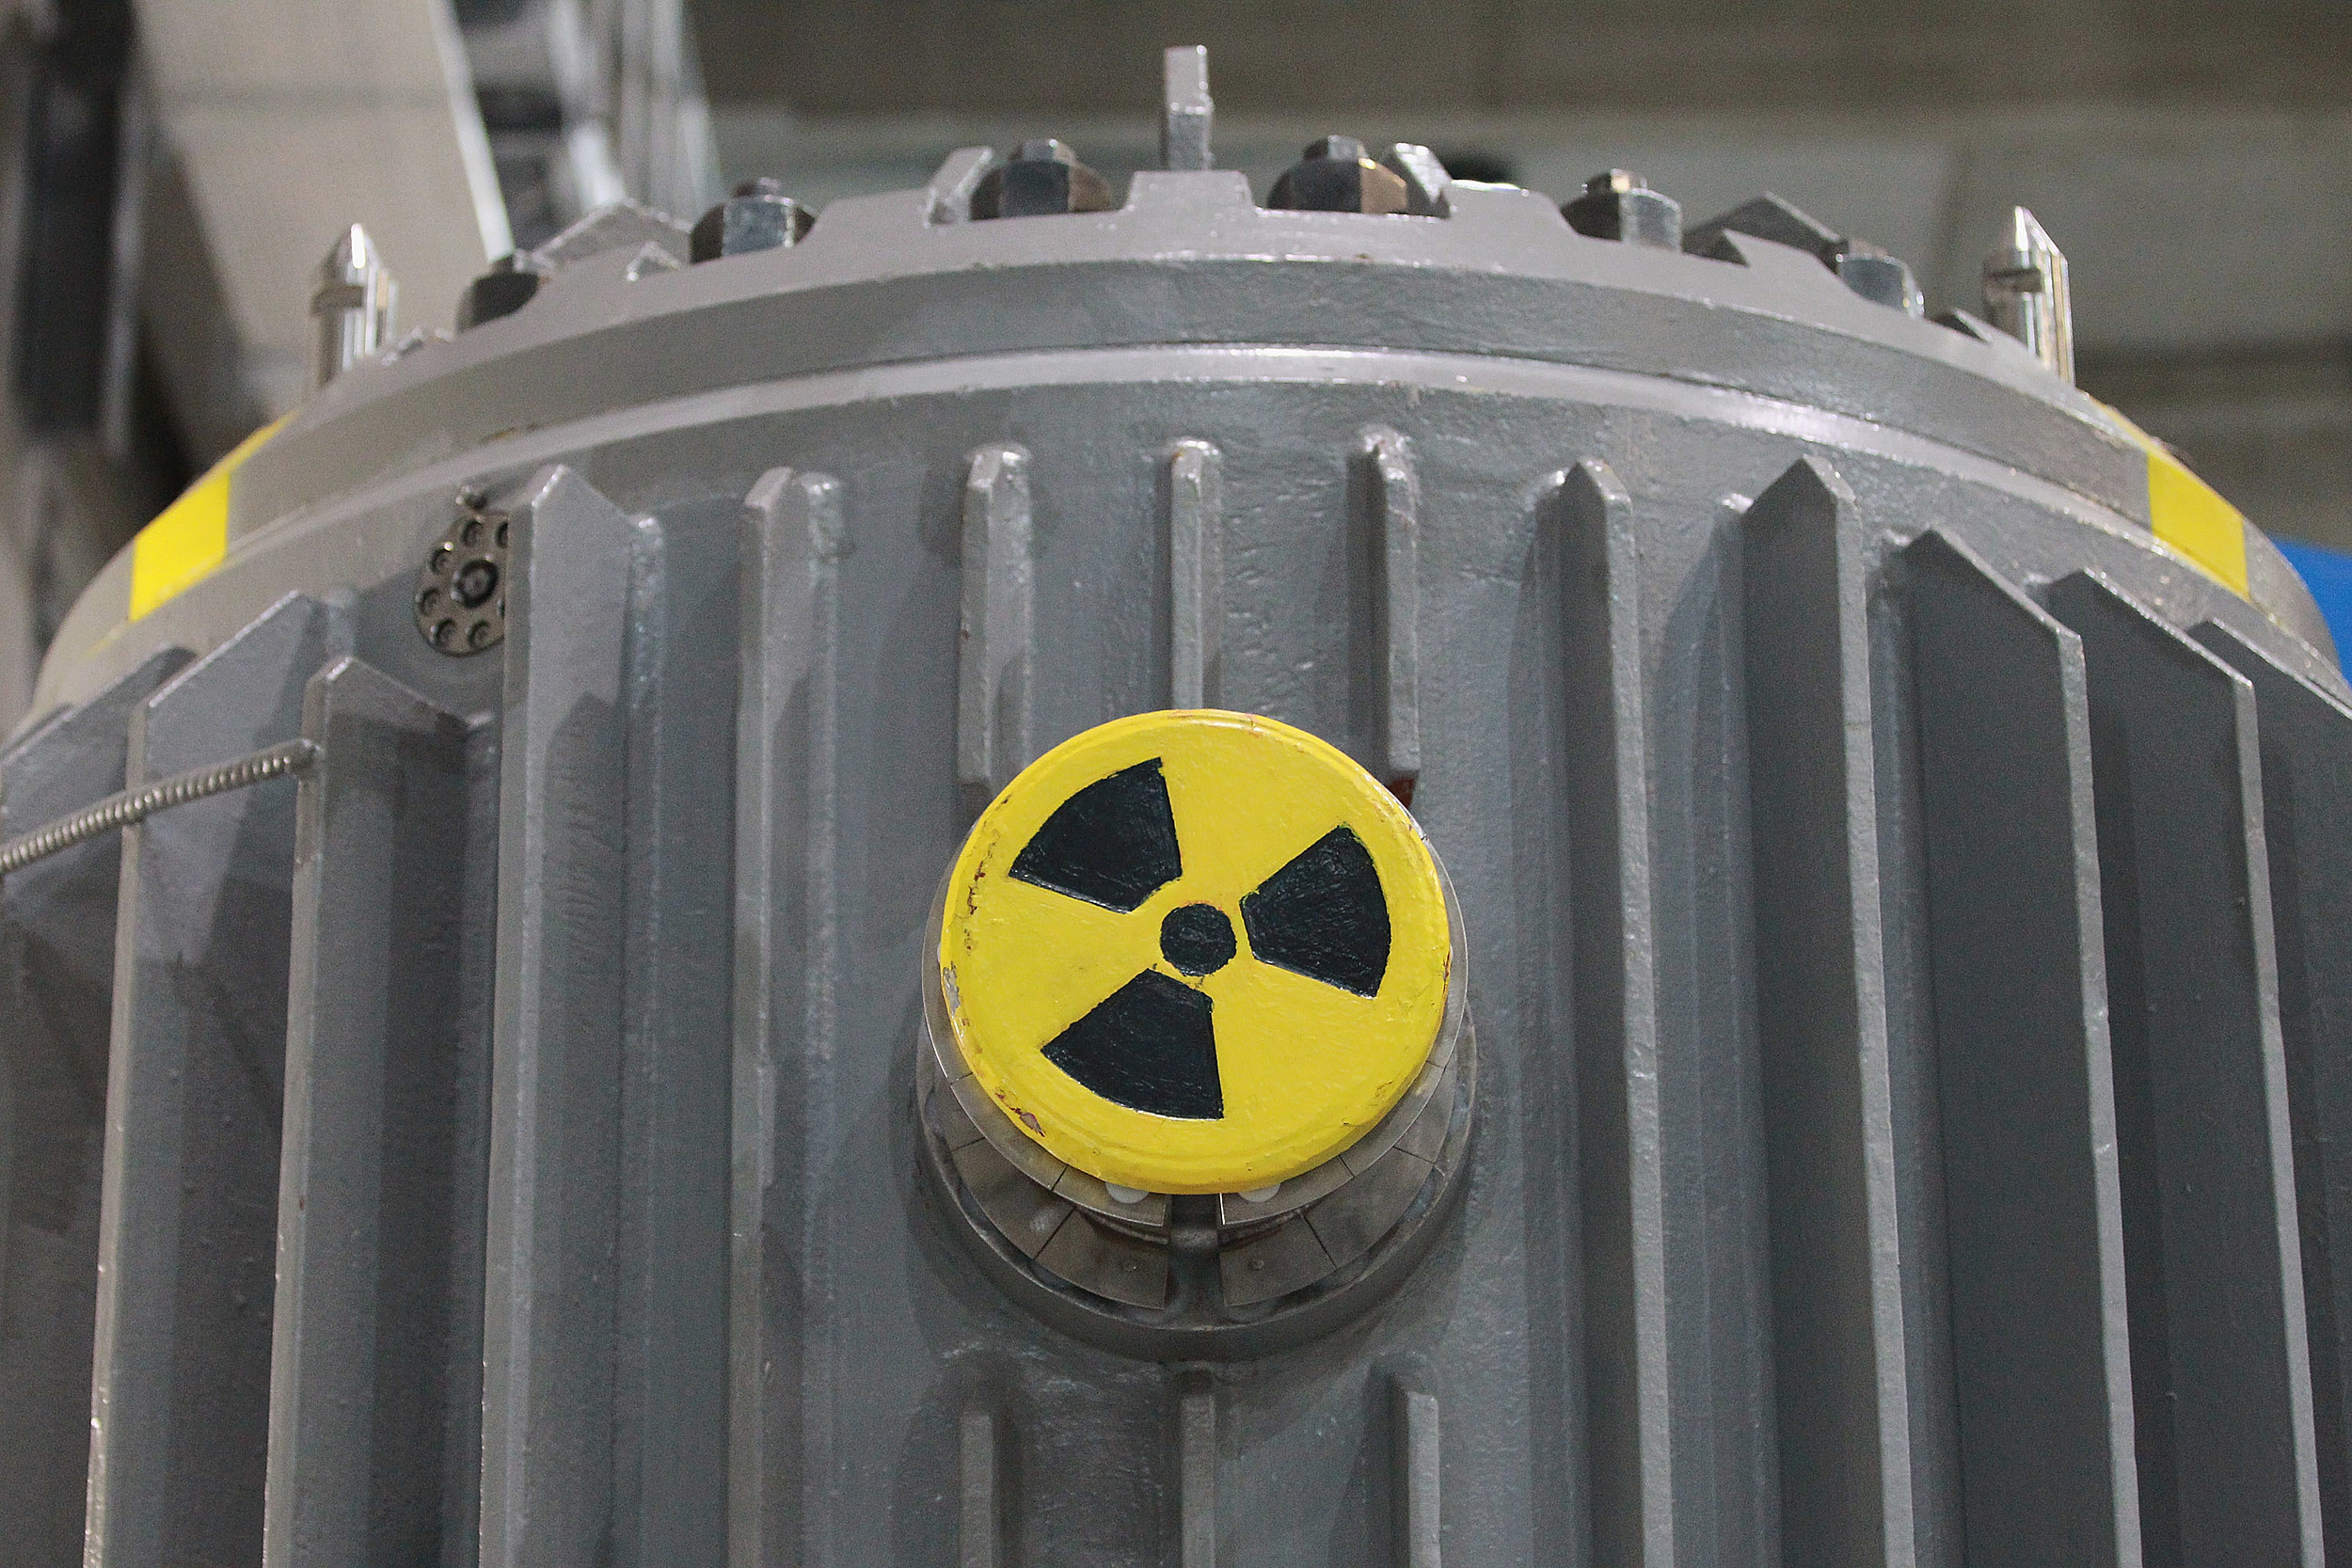 WIPP plant in carlsbad new mexico experiences radiation leak